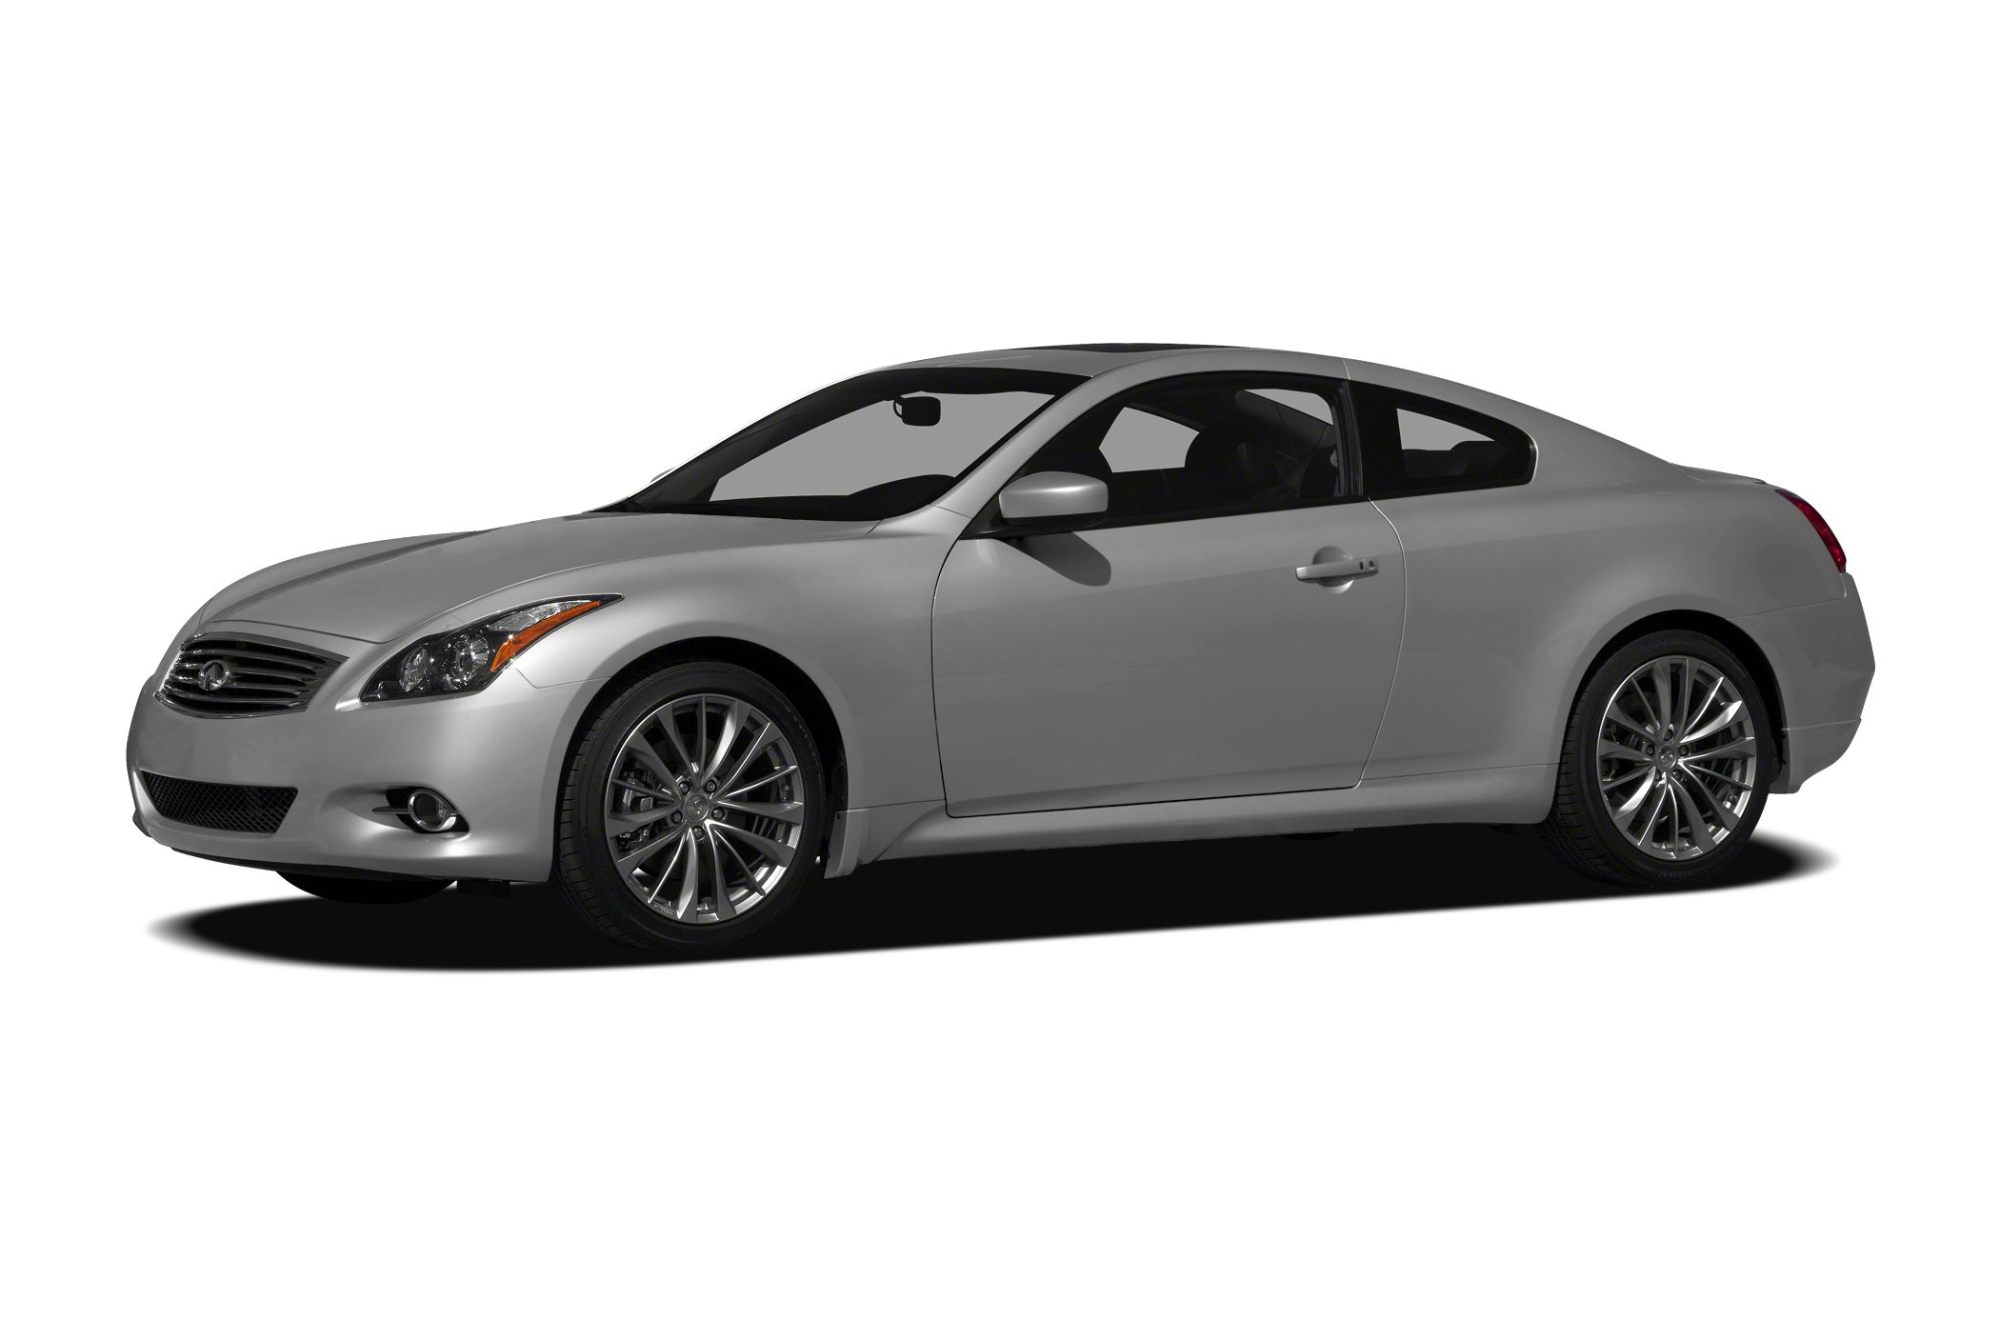 hight resolution of 2012 infiniti g37 safety features